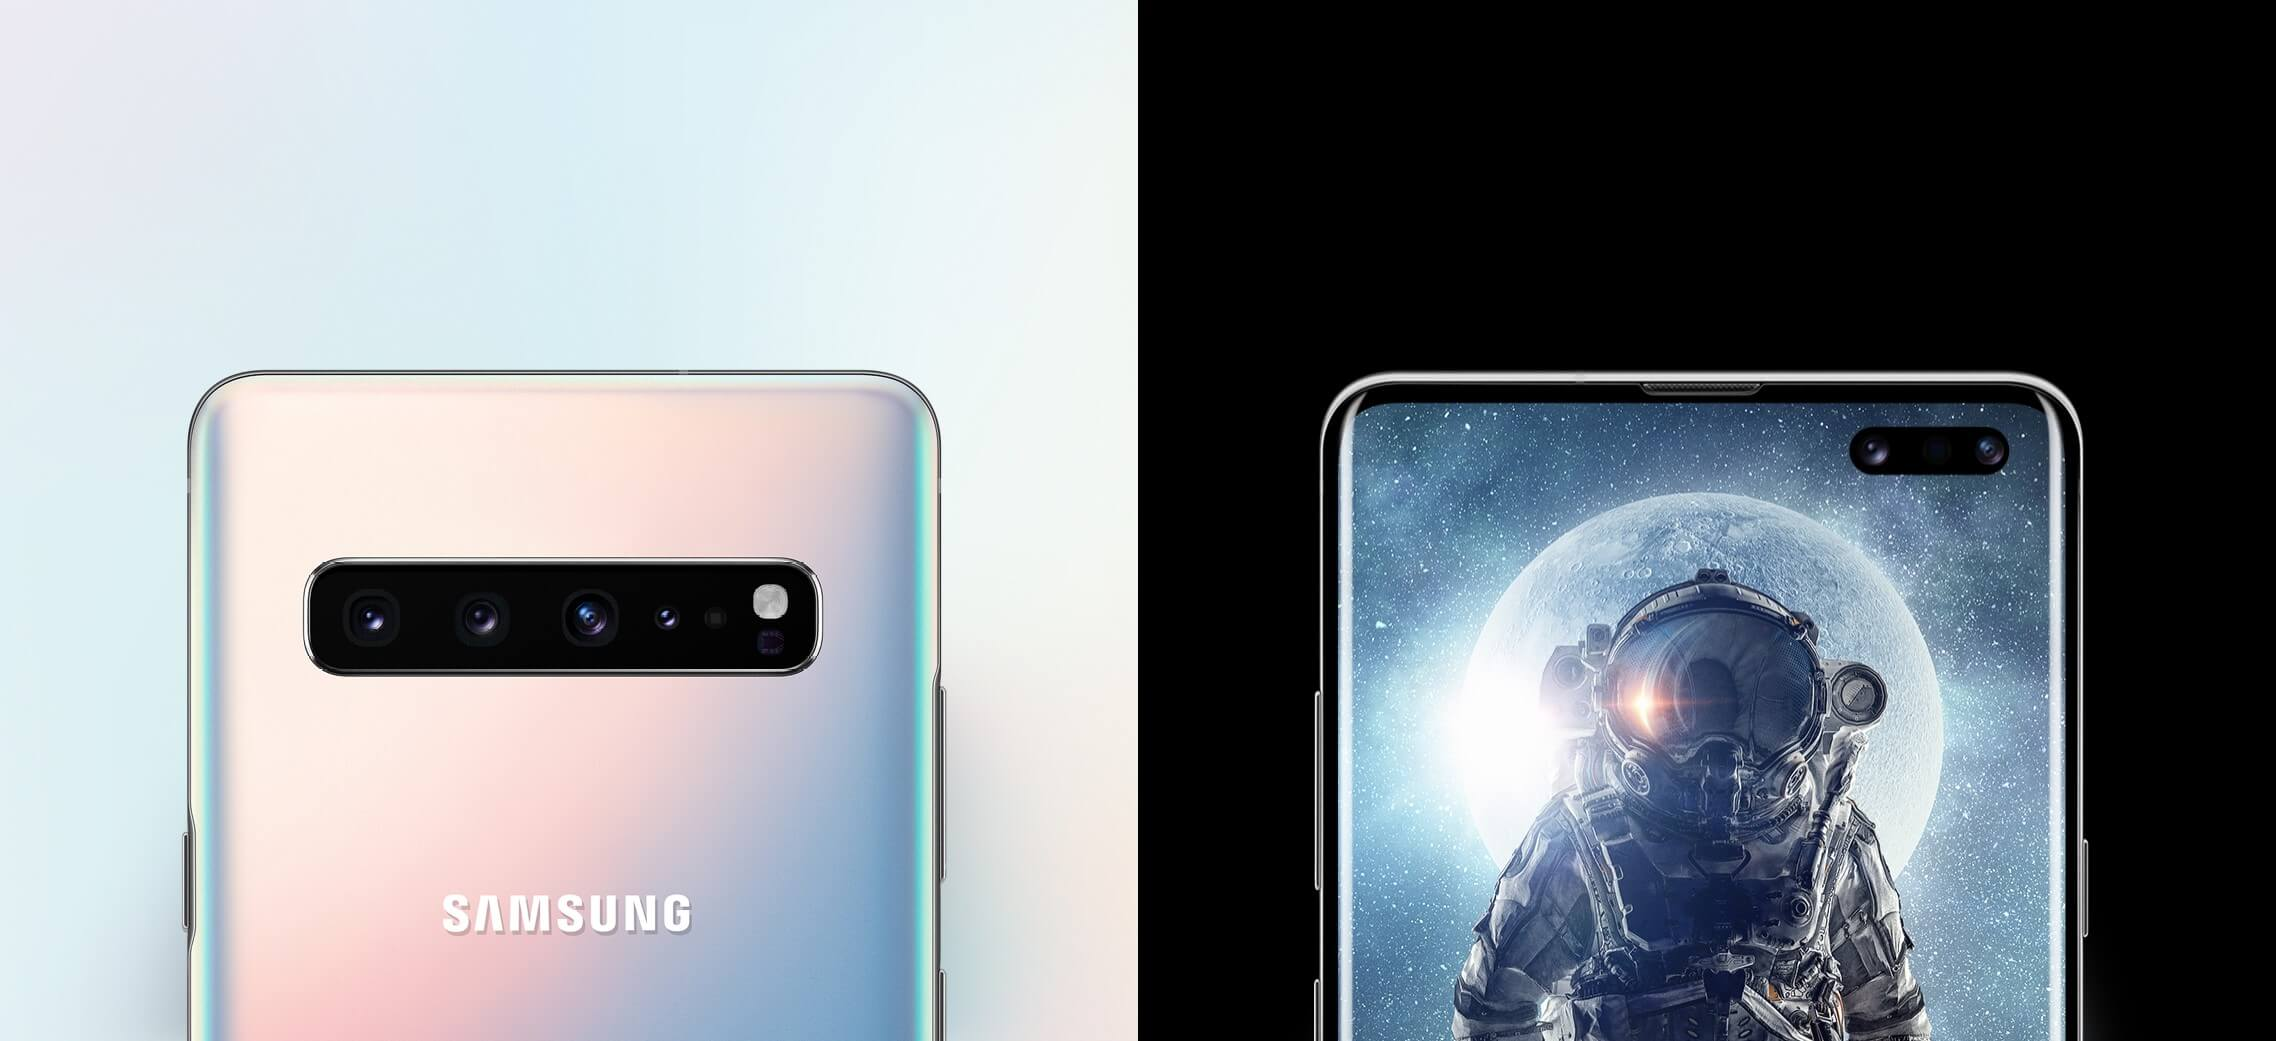 Samsung Galaxy S10 5G launches in South Korea with a lot more features than just 5G